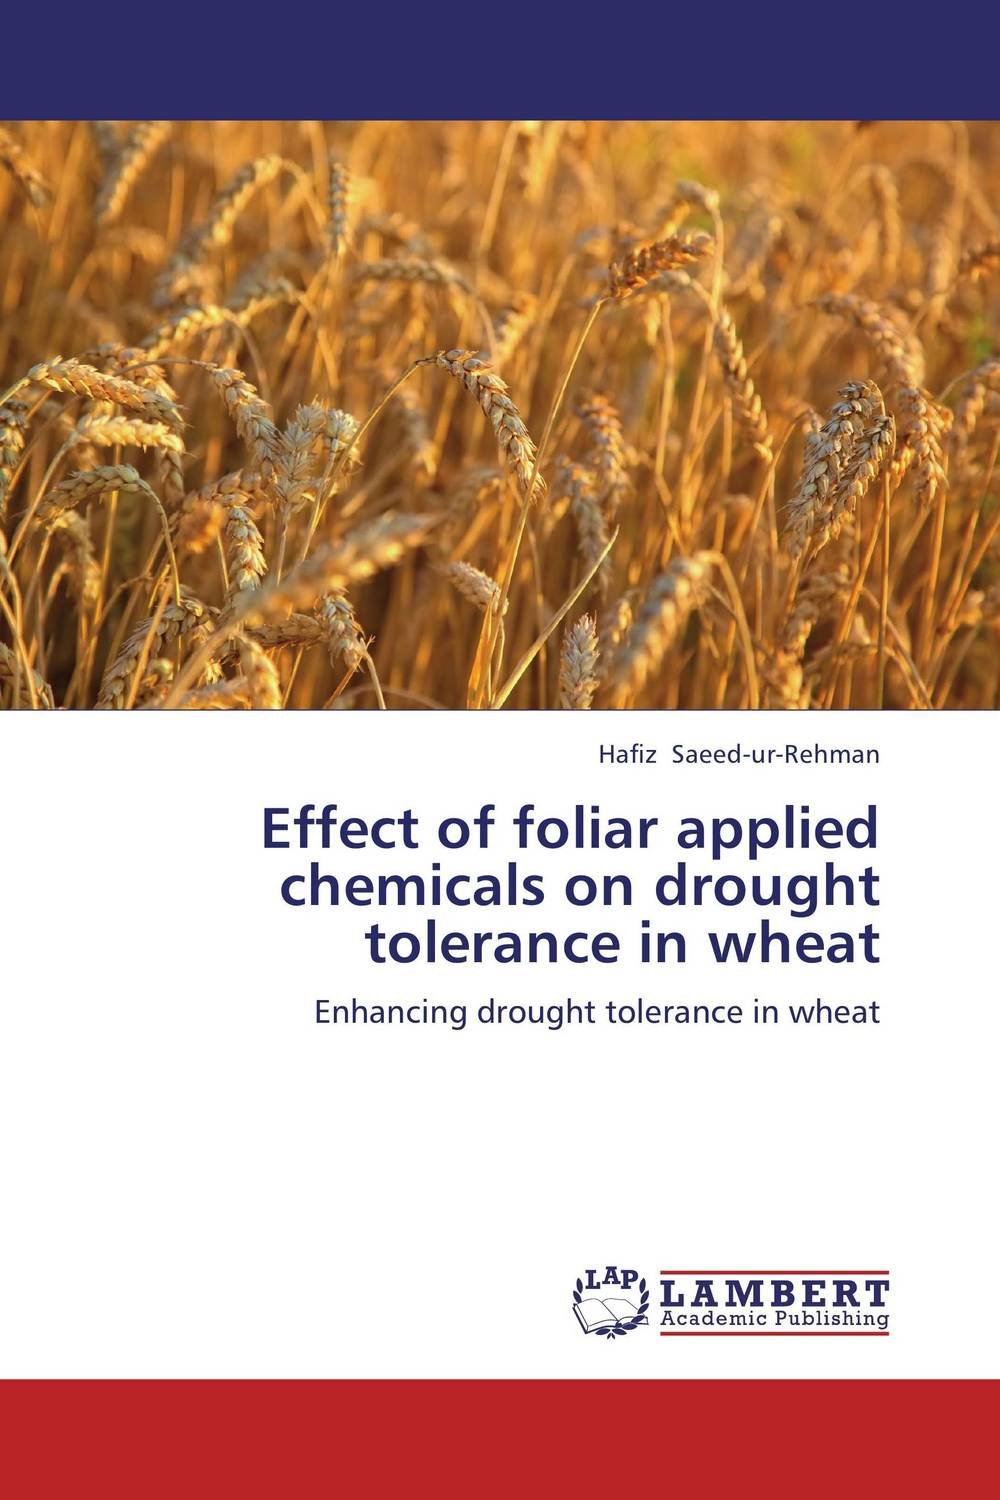 Effect of foliar applied chemicals on drought tolerance in wheat